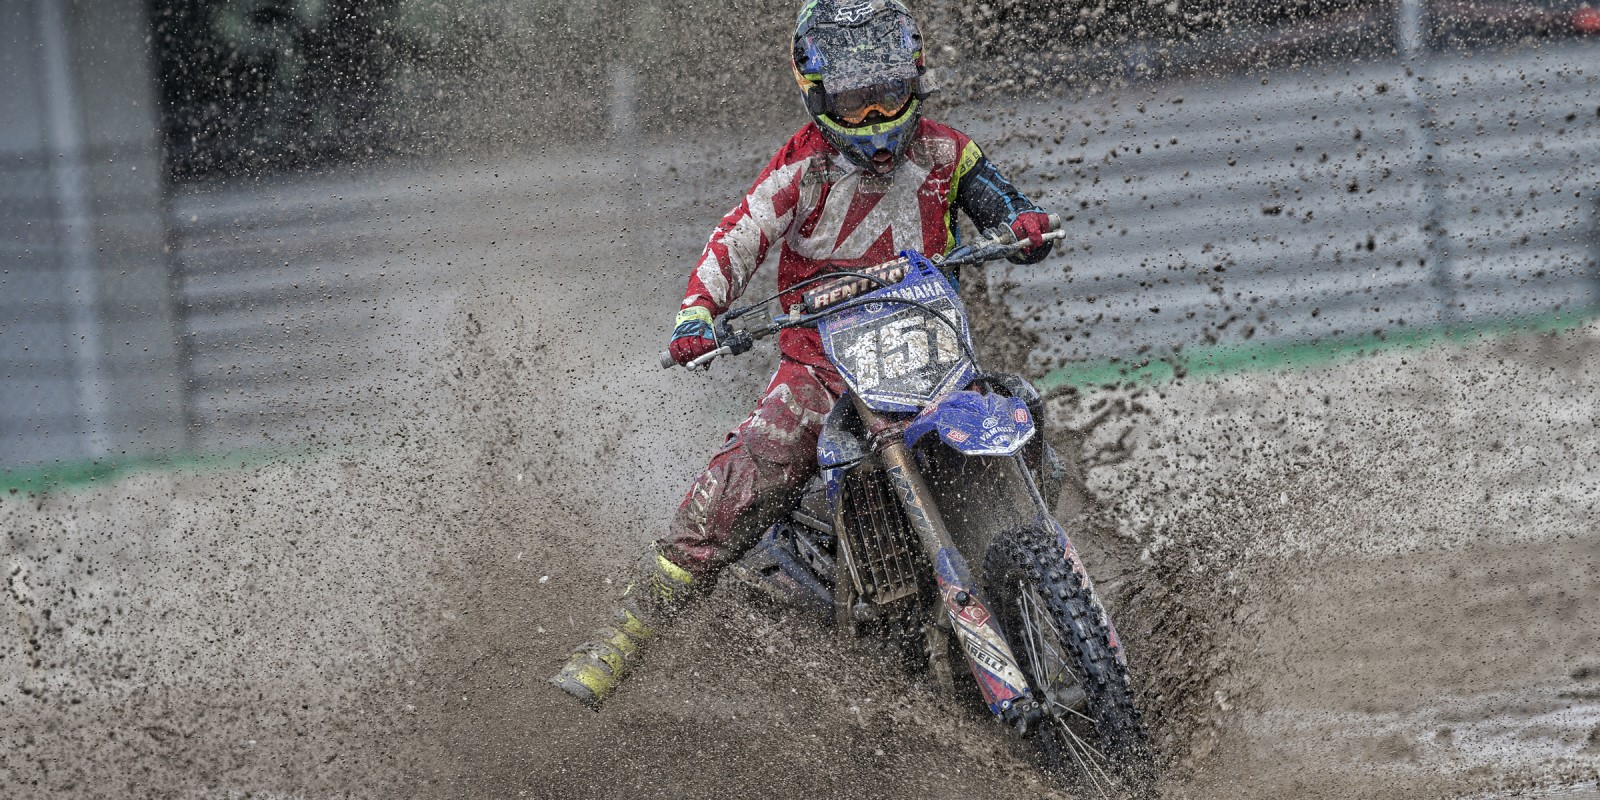 Courtney Duncan at the 2016 MXGP of the Netherlands